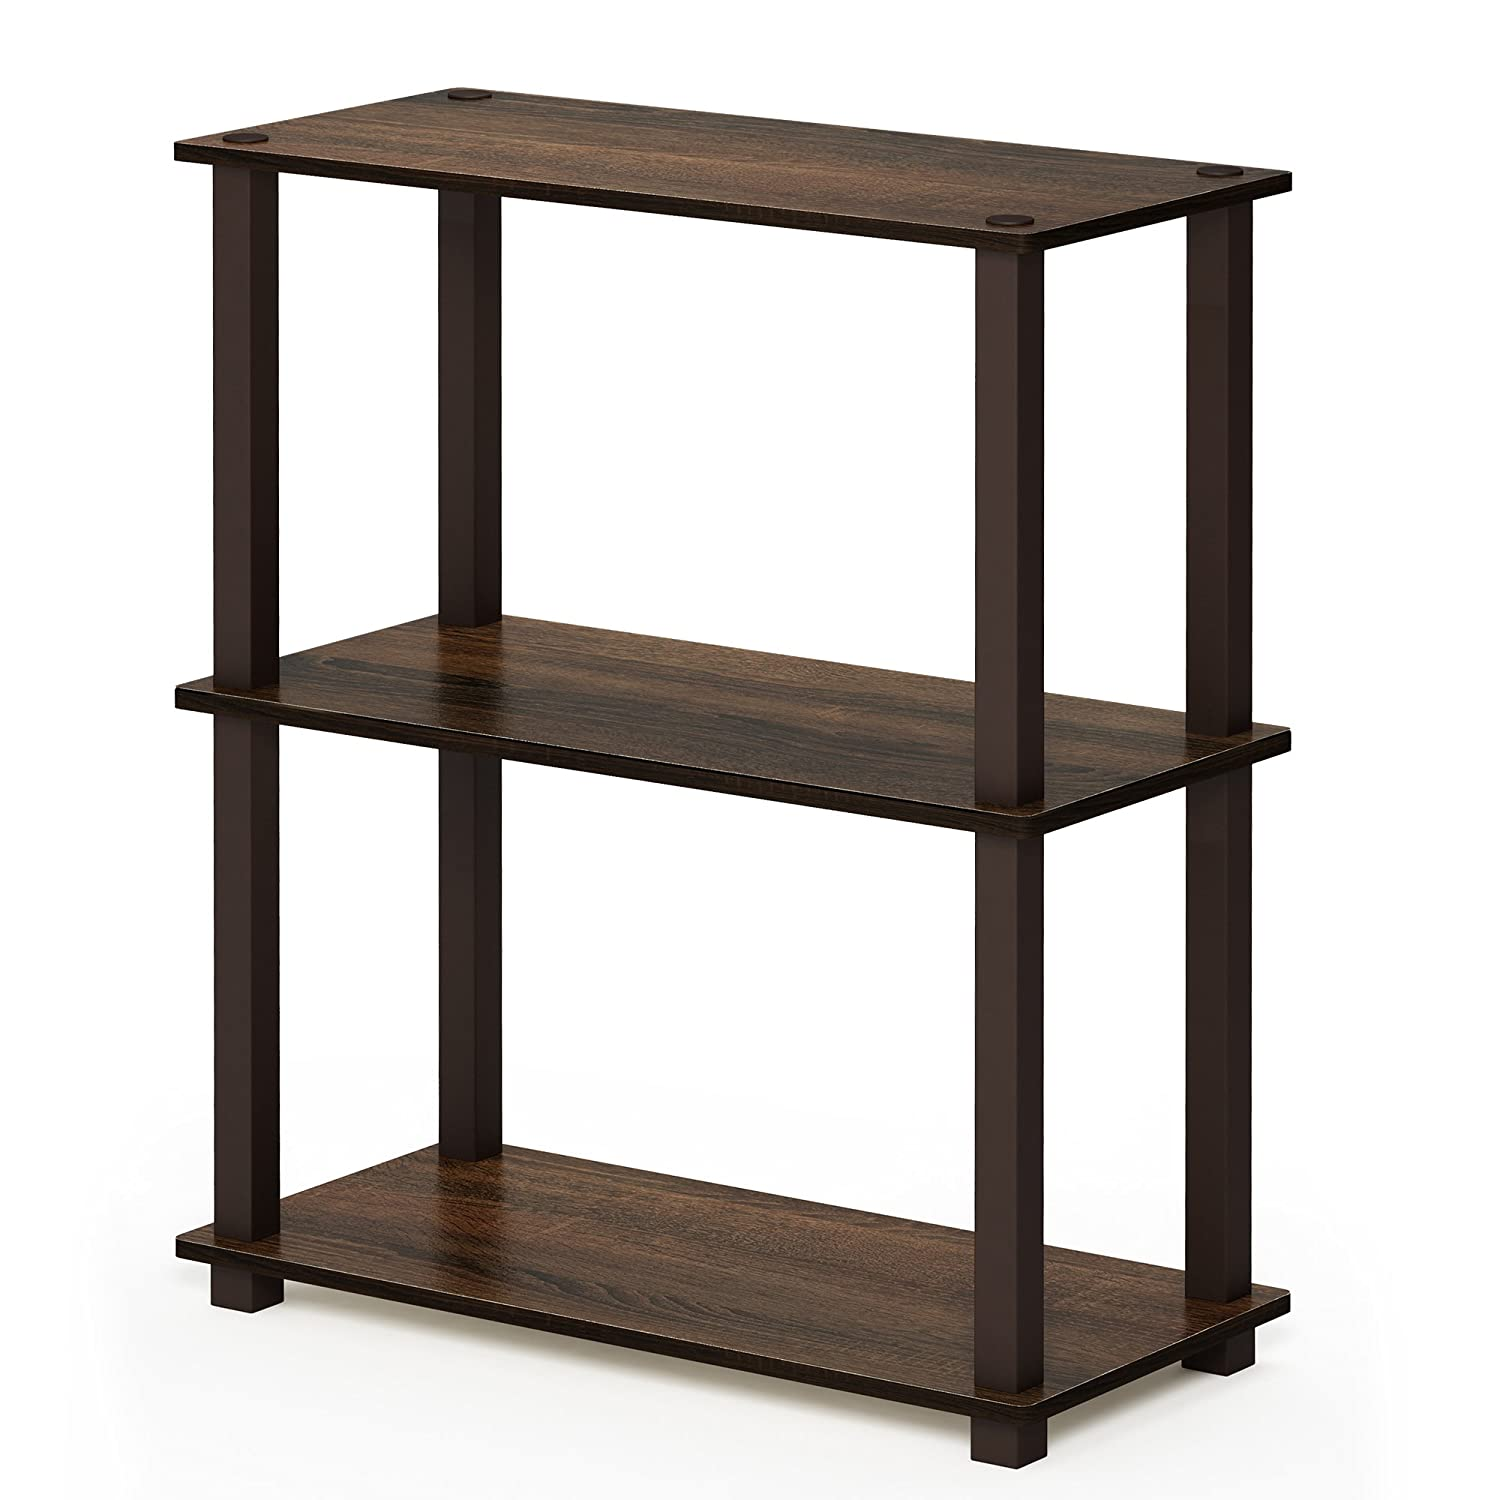 Walnut Brown 3-Tier Square Tubes Furinno 17091BE WH Turn-N-Tube 5-Tier Compact Multipurpose Shelf, Single, Beech White